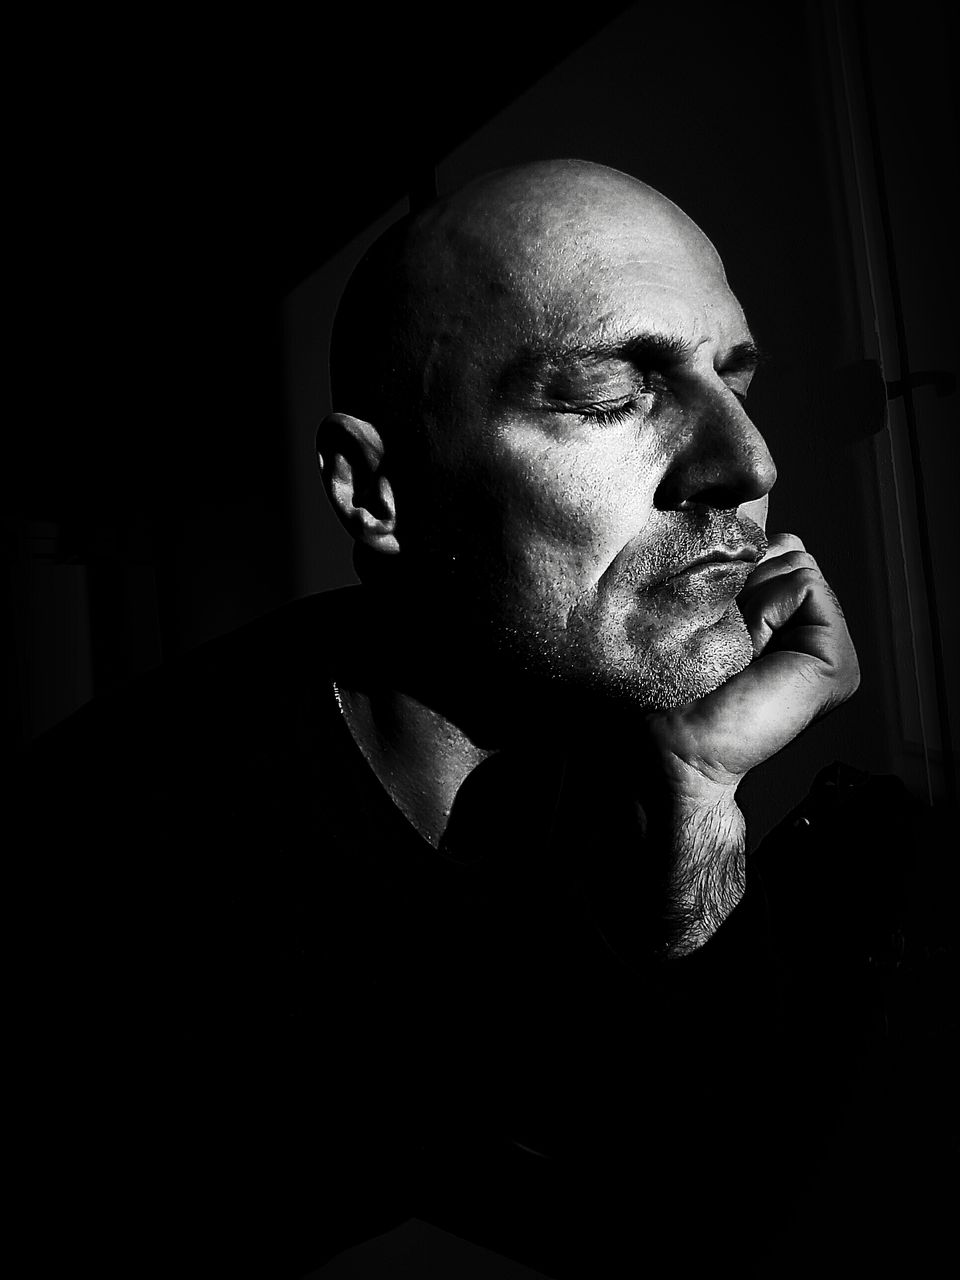 one person, headshot, beard, indoors, males, portrait, mature men, lifestyles, mid adult men, men, real people, facial hair, adult, mid adult, looking away, looking, leisure activity, completely bald, mature adult, contemplation, dark, hair loss, black background